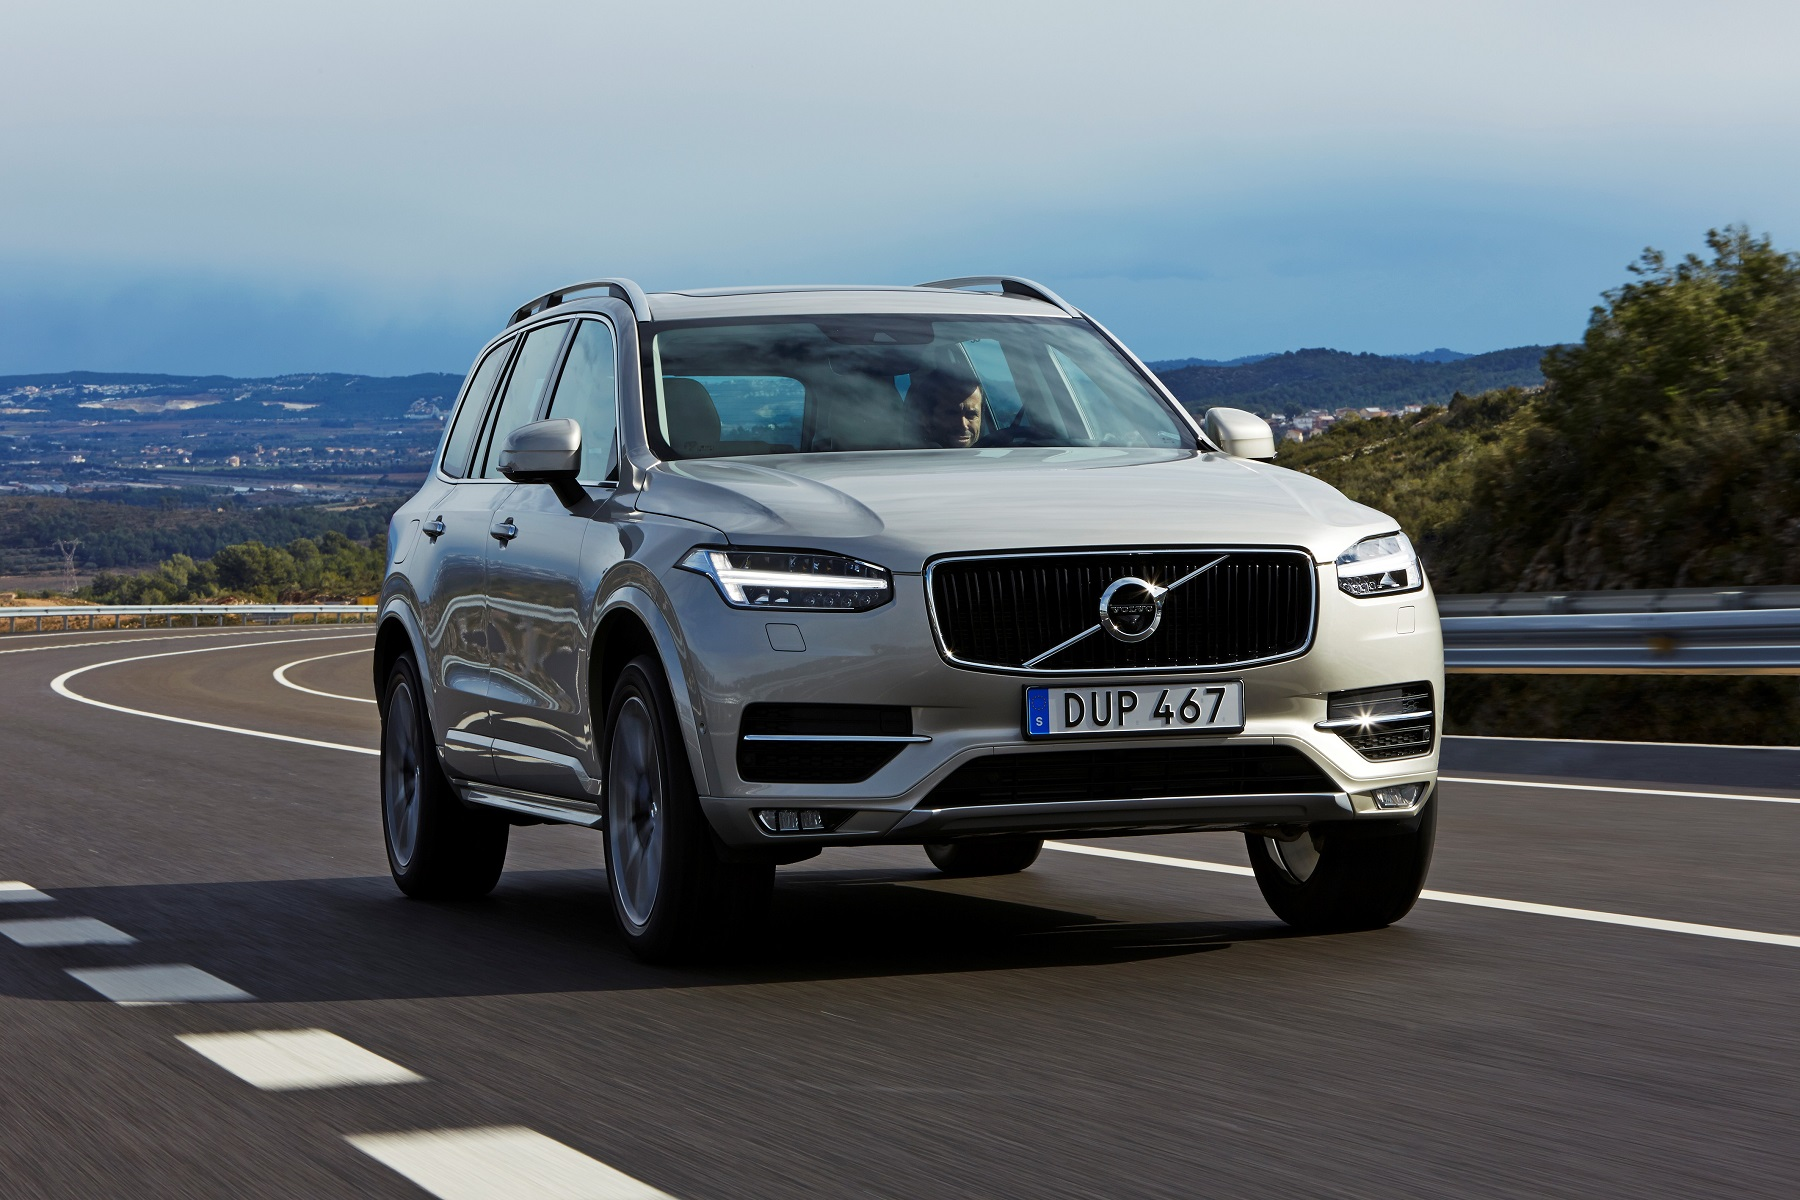 Manufacturer photo: Volvo's four cylinders use both a supercharger and a turbocharger, with direct fuel injection